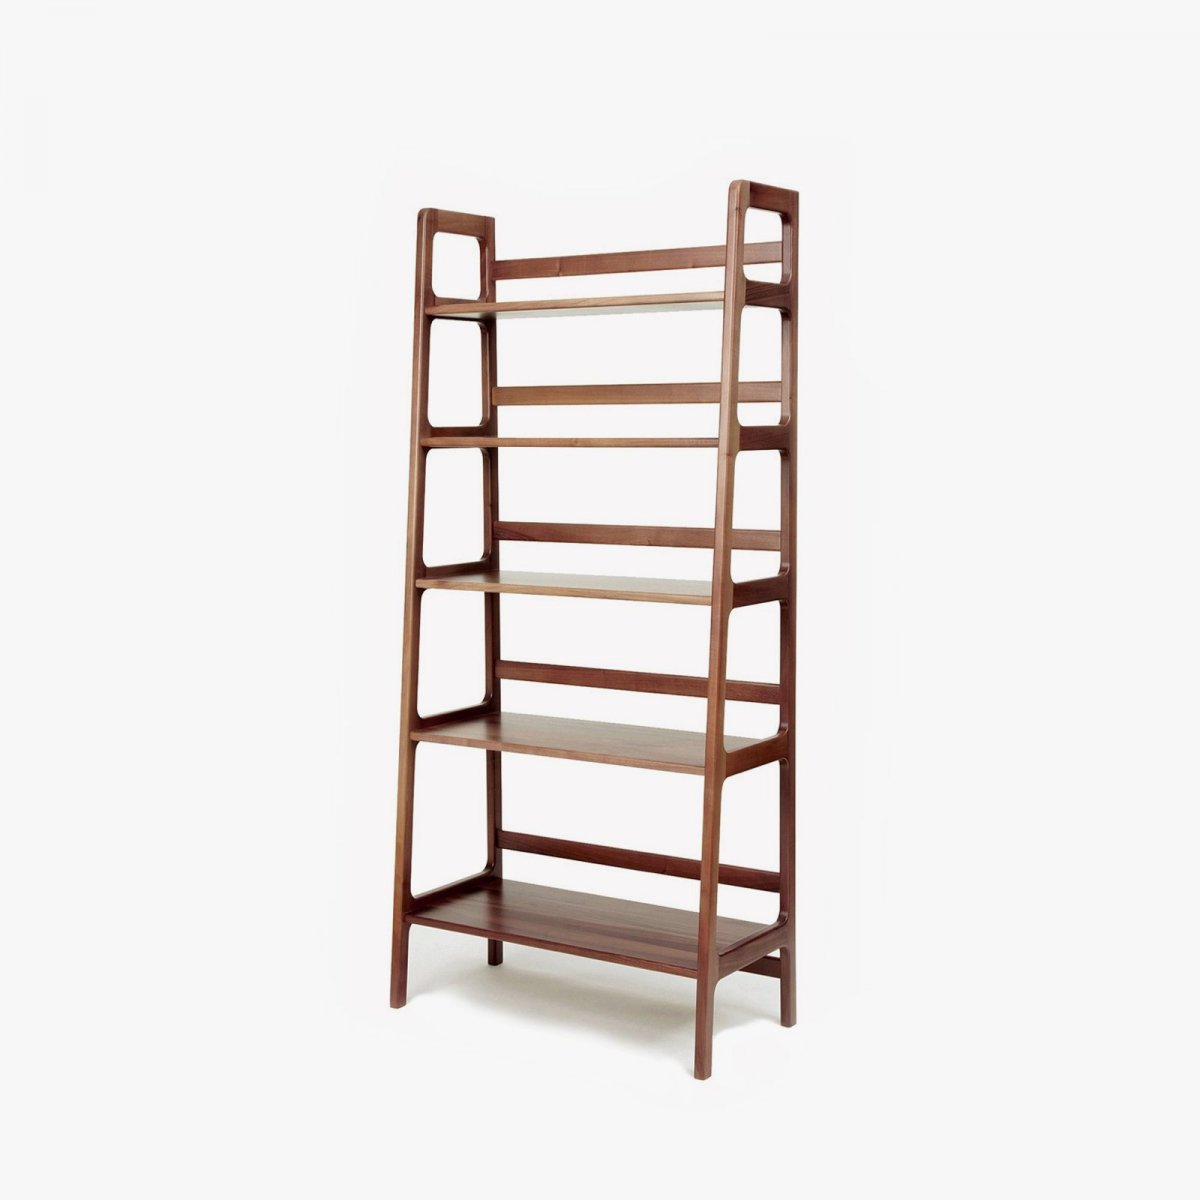 Agnes High Shelving Unit, walnut.